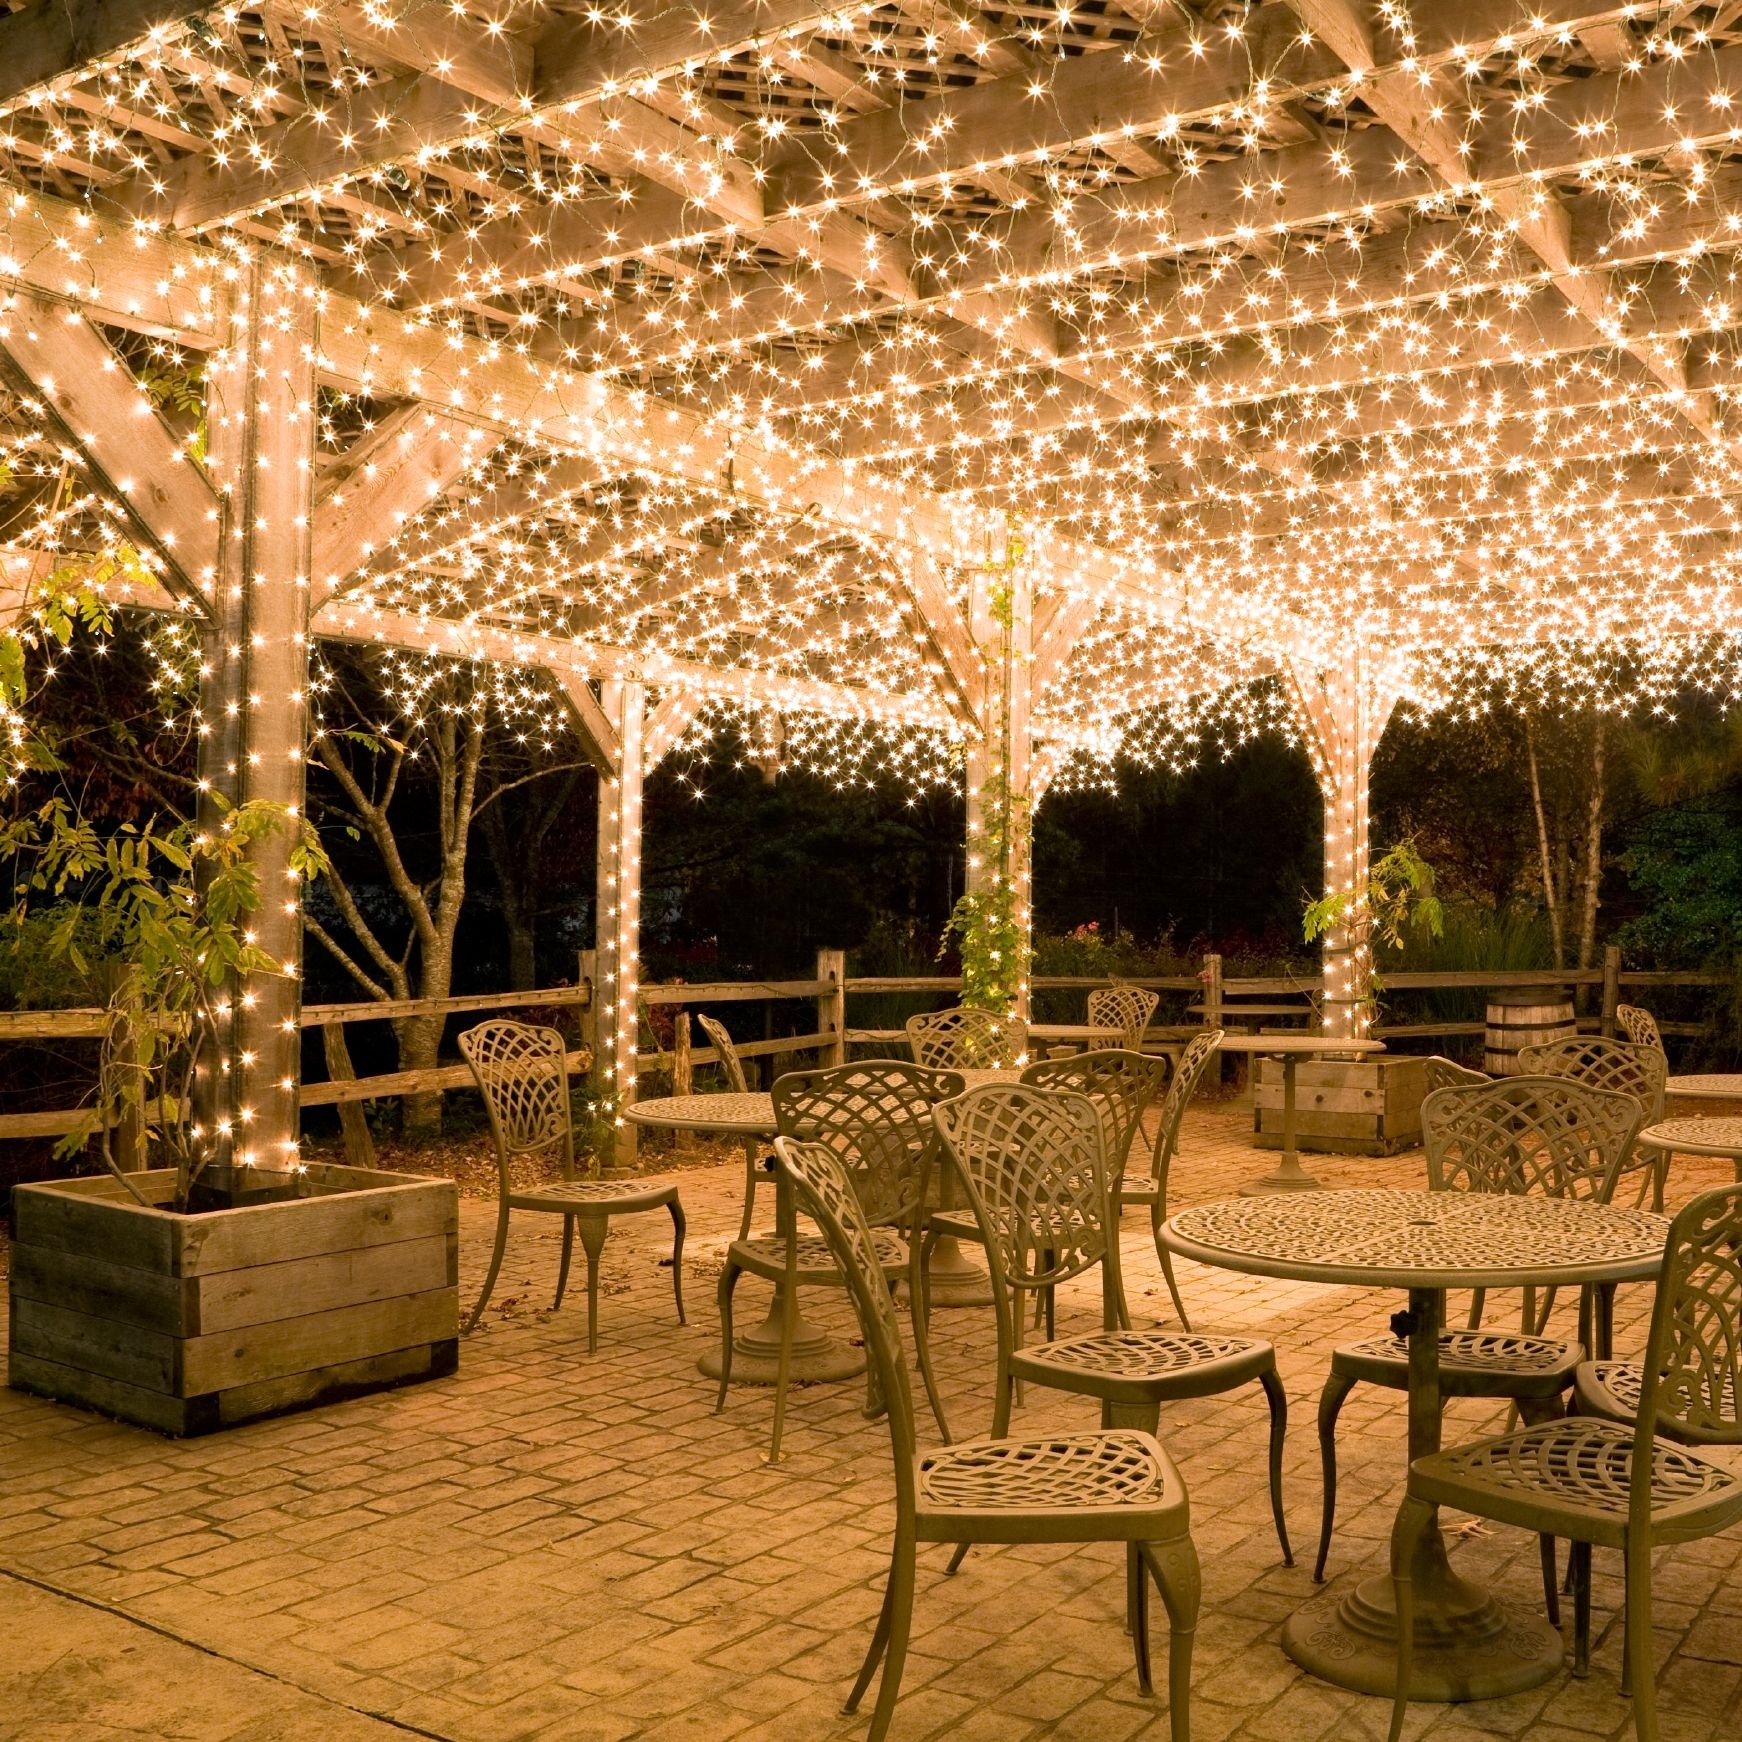 Hang White Icicle Lights To Create Magical Outdoor Lighting (View 8 of 15)